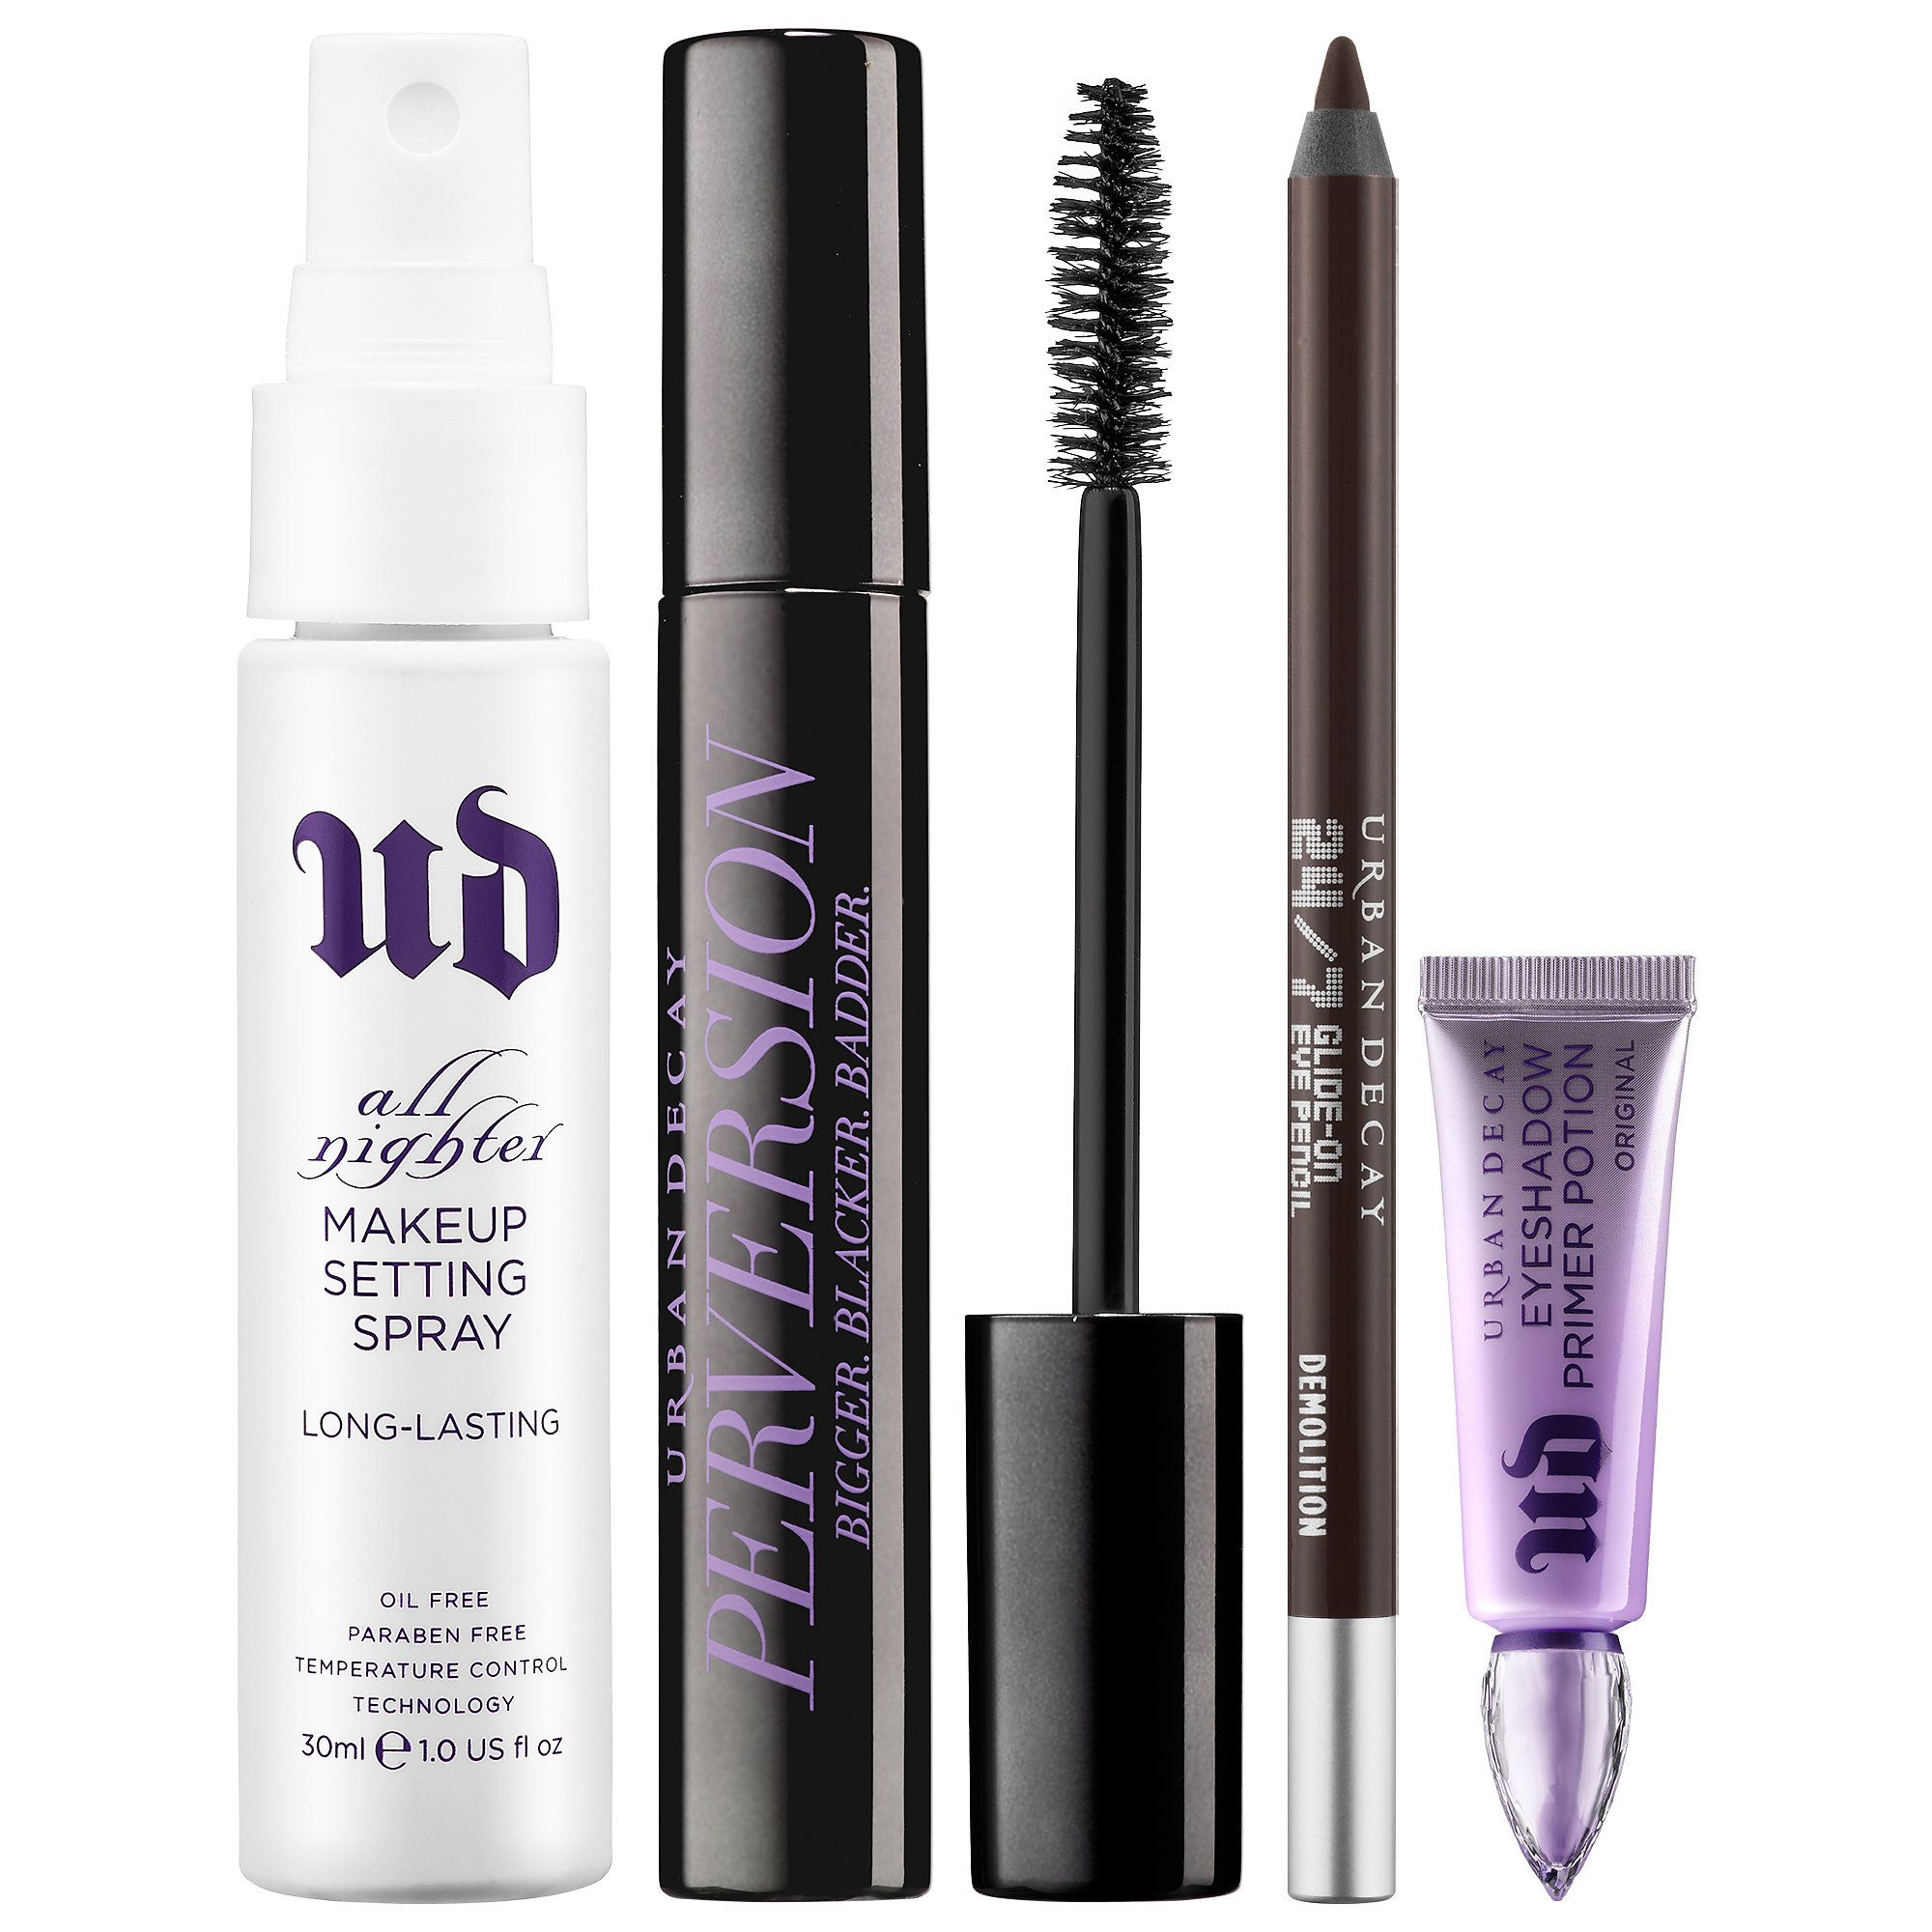 Shop Urban Decay's First Hit Travel Set at Sephora. It